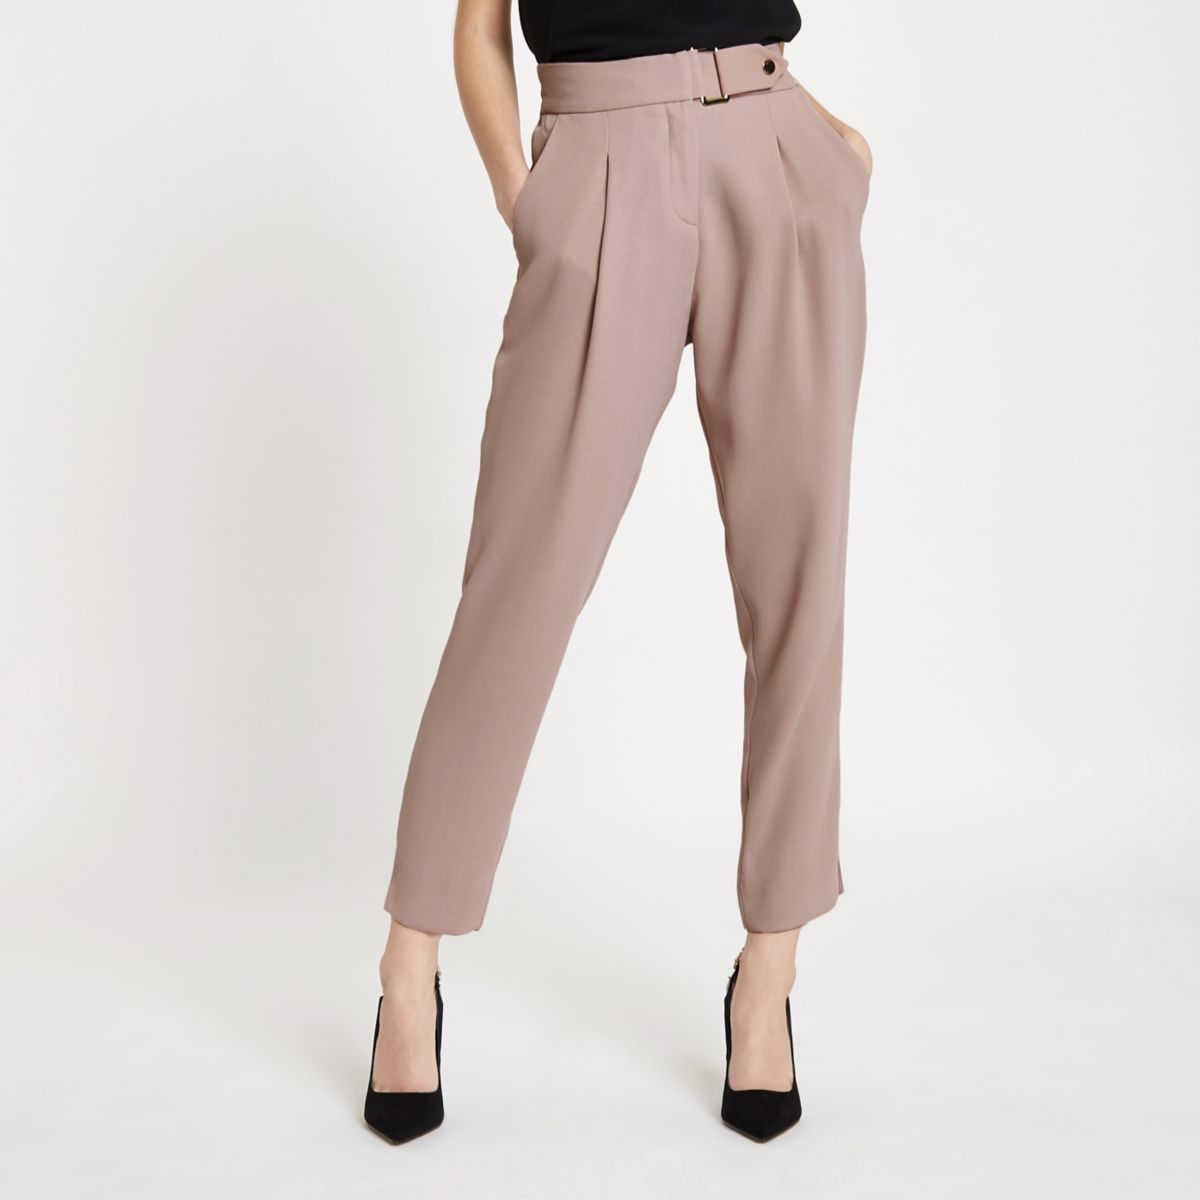 Petite blush pink belted tapered trousers